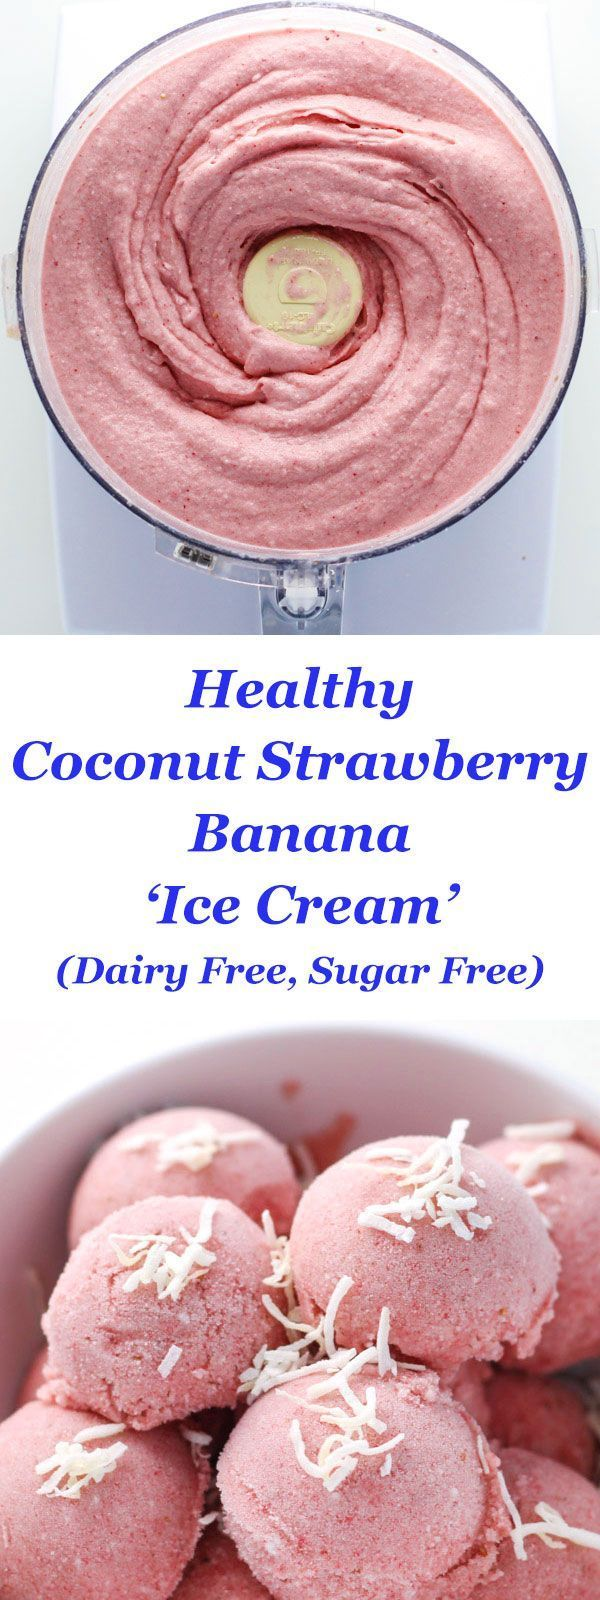 "Healthy Coconut Strawberry Banana ""Ice Cream"" made Dairy Free! This is so smooth, creamy, and delicious!"